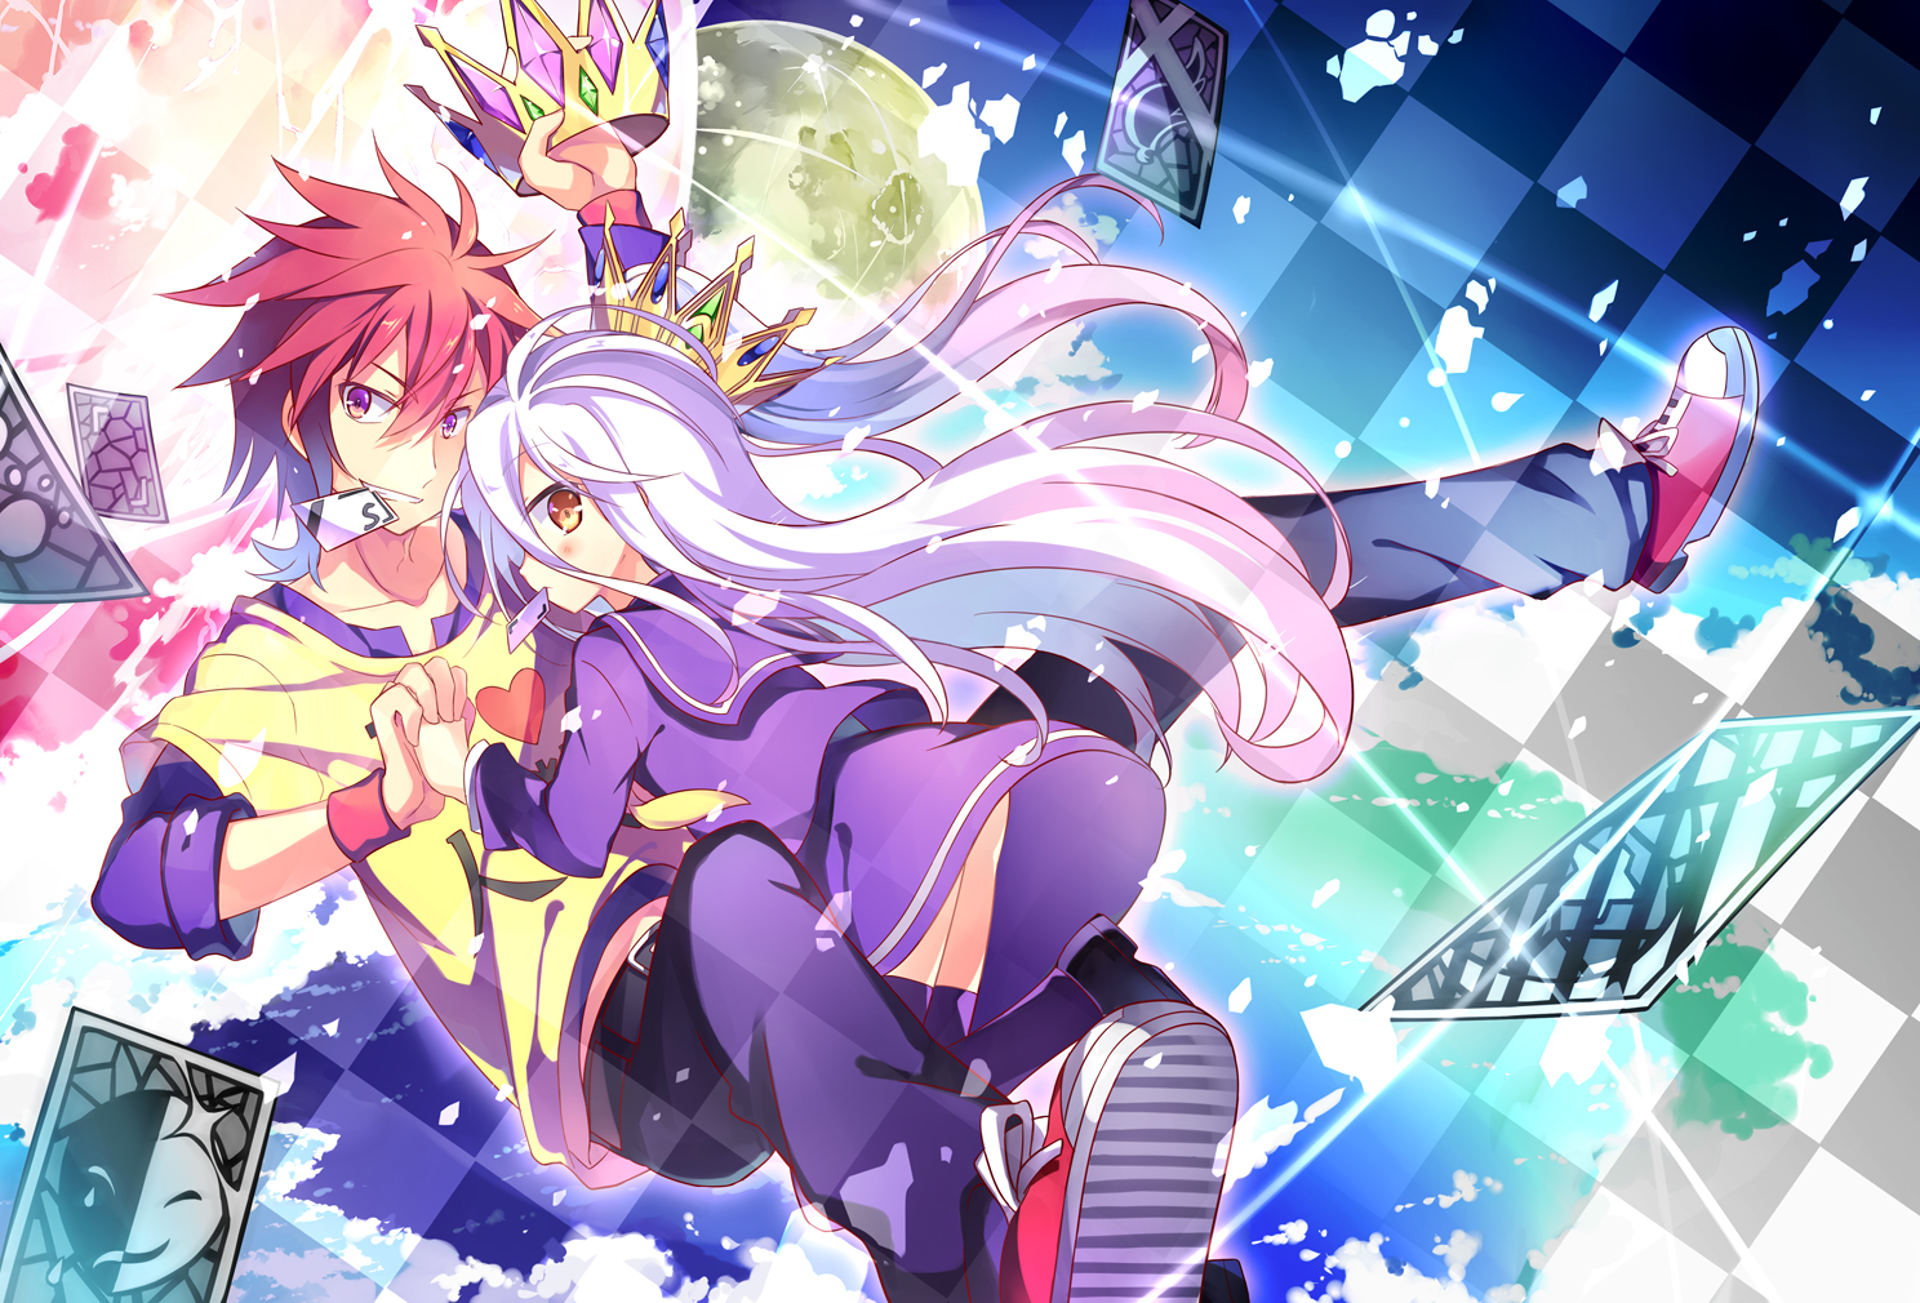 Download No Game No Life Wallpaper Hd Backgrounds Download